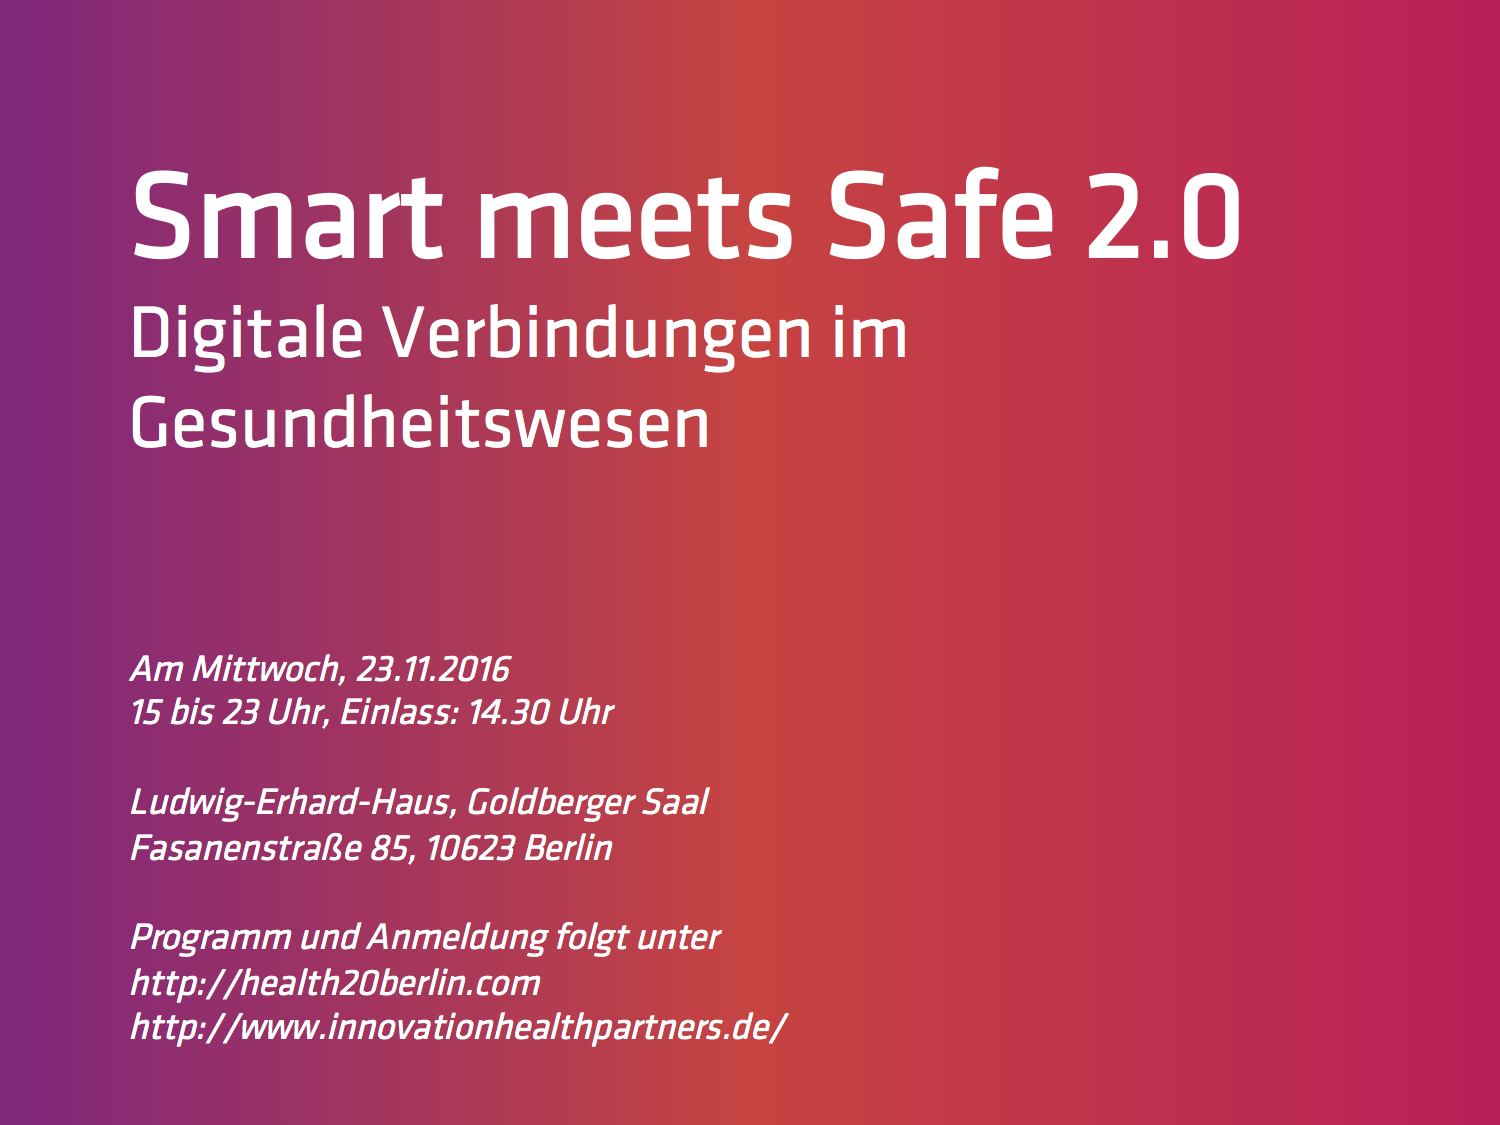 safe-the-date_smart-meets-safe-2-0